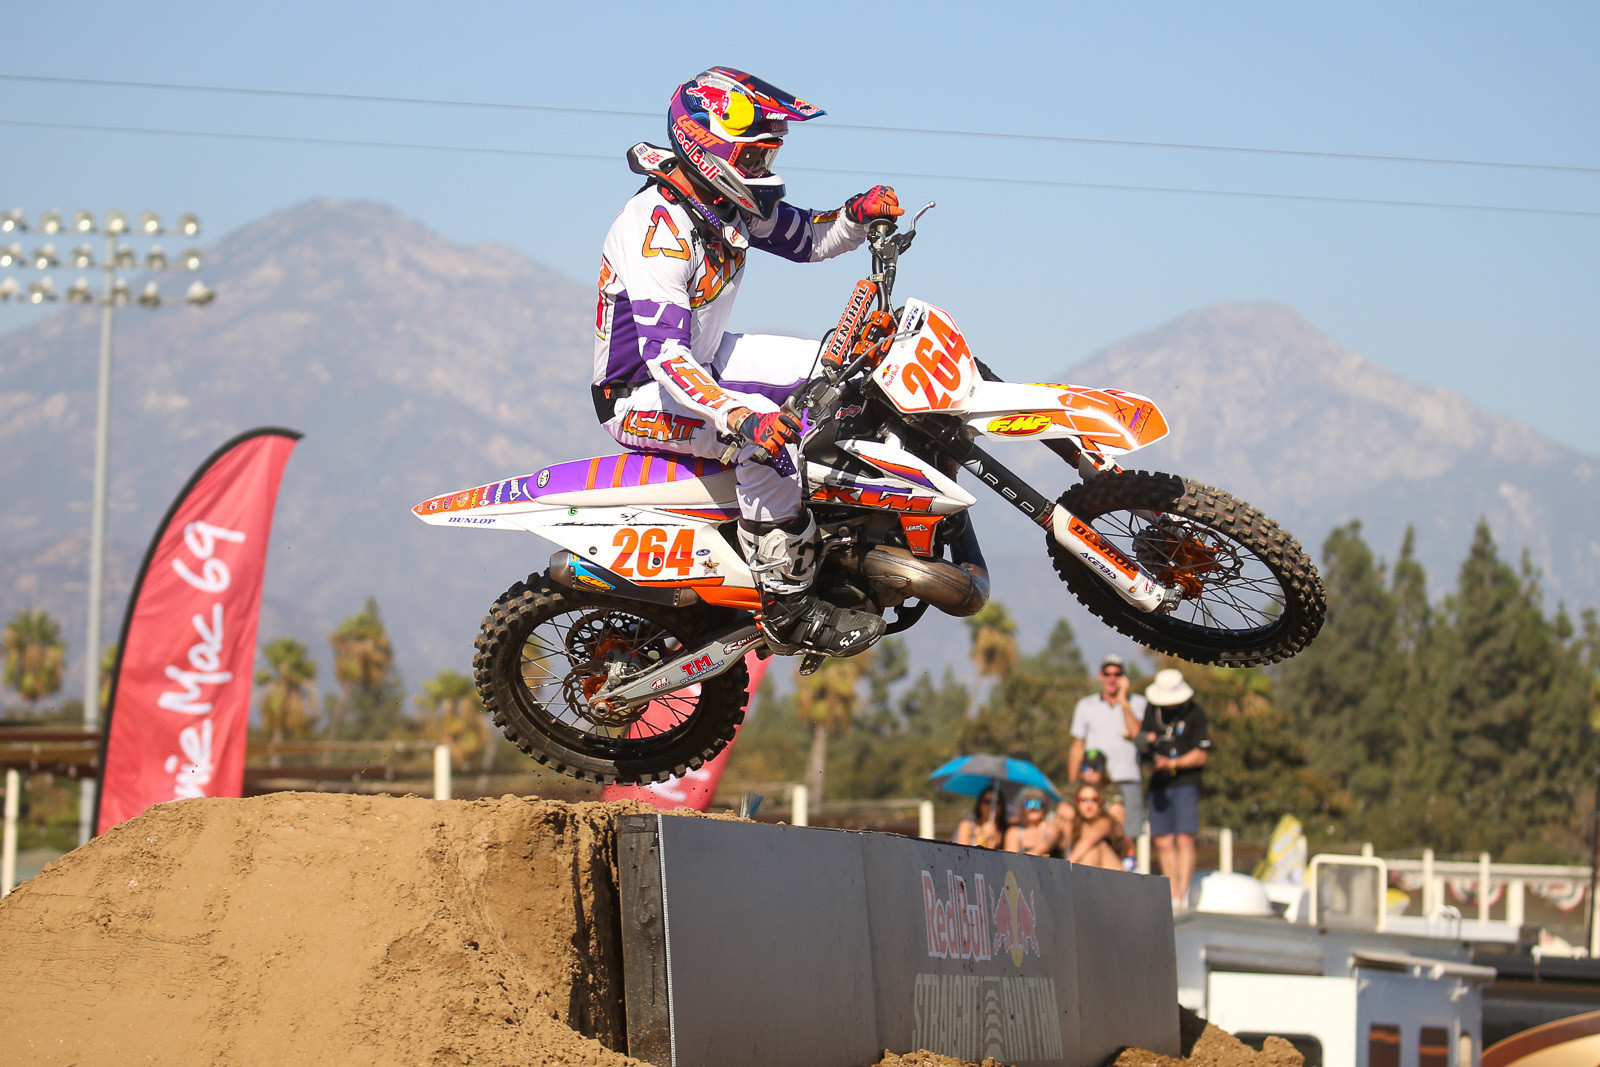 Ryan Sipes.